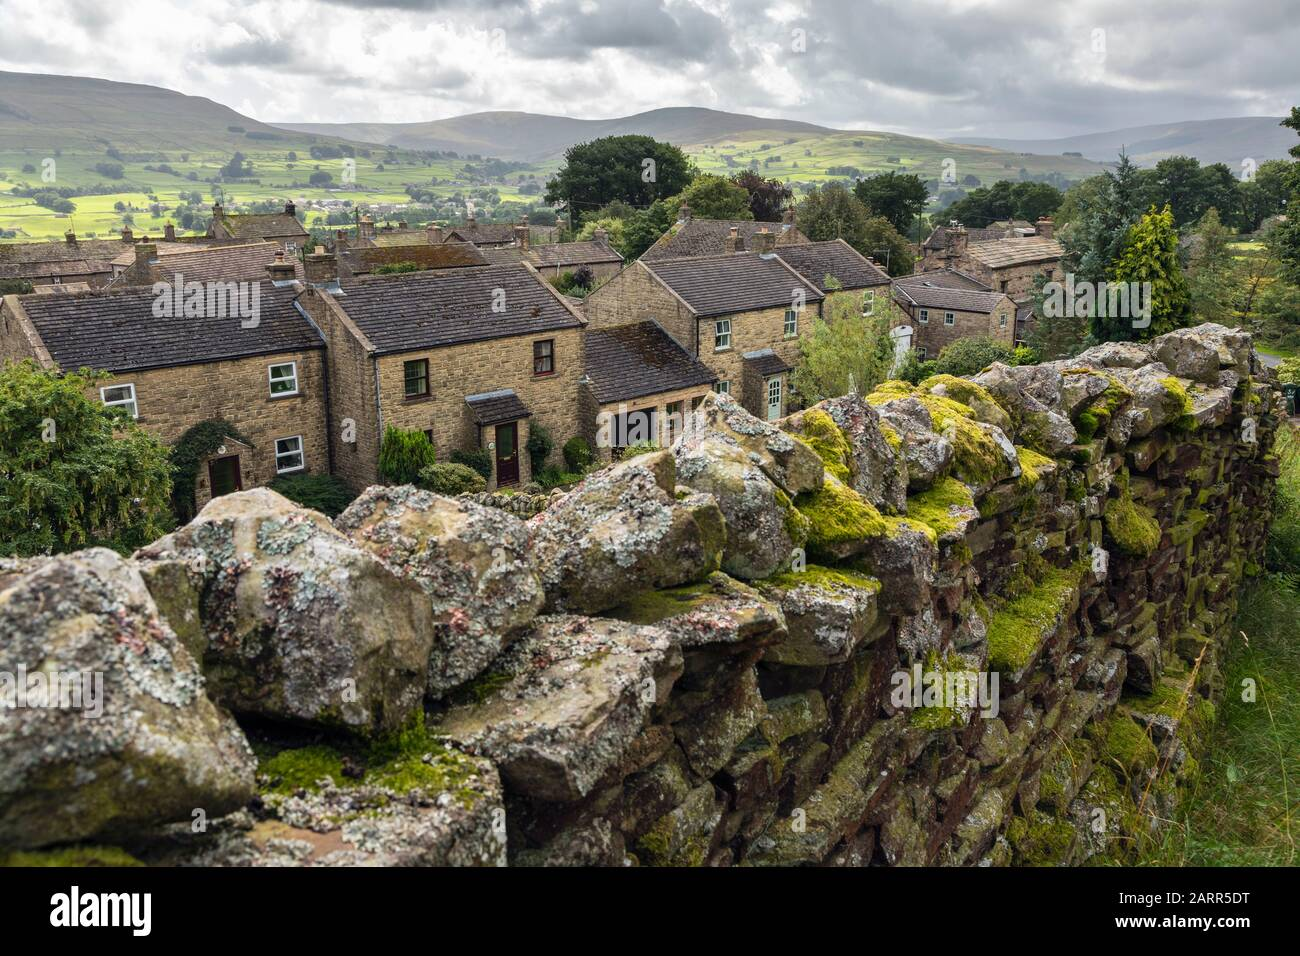 The tiny picturesque village of Sedbusk in Wensleydale, Yorkshire Dales National Park, England Stock Photo